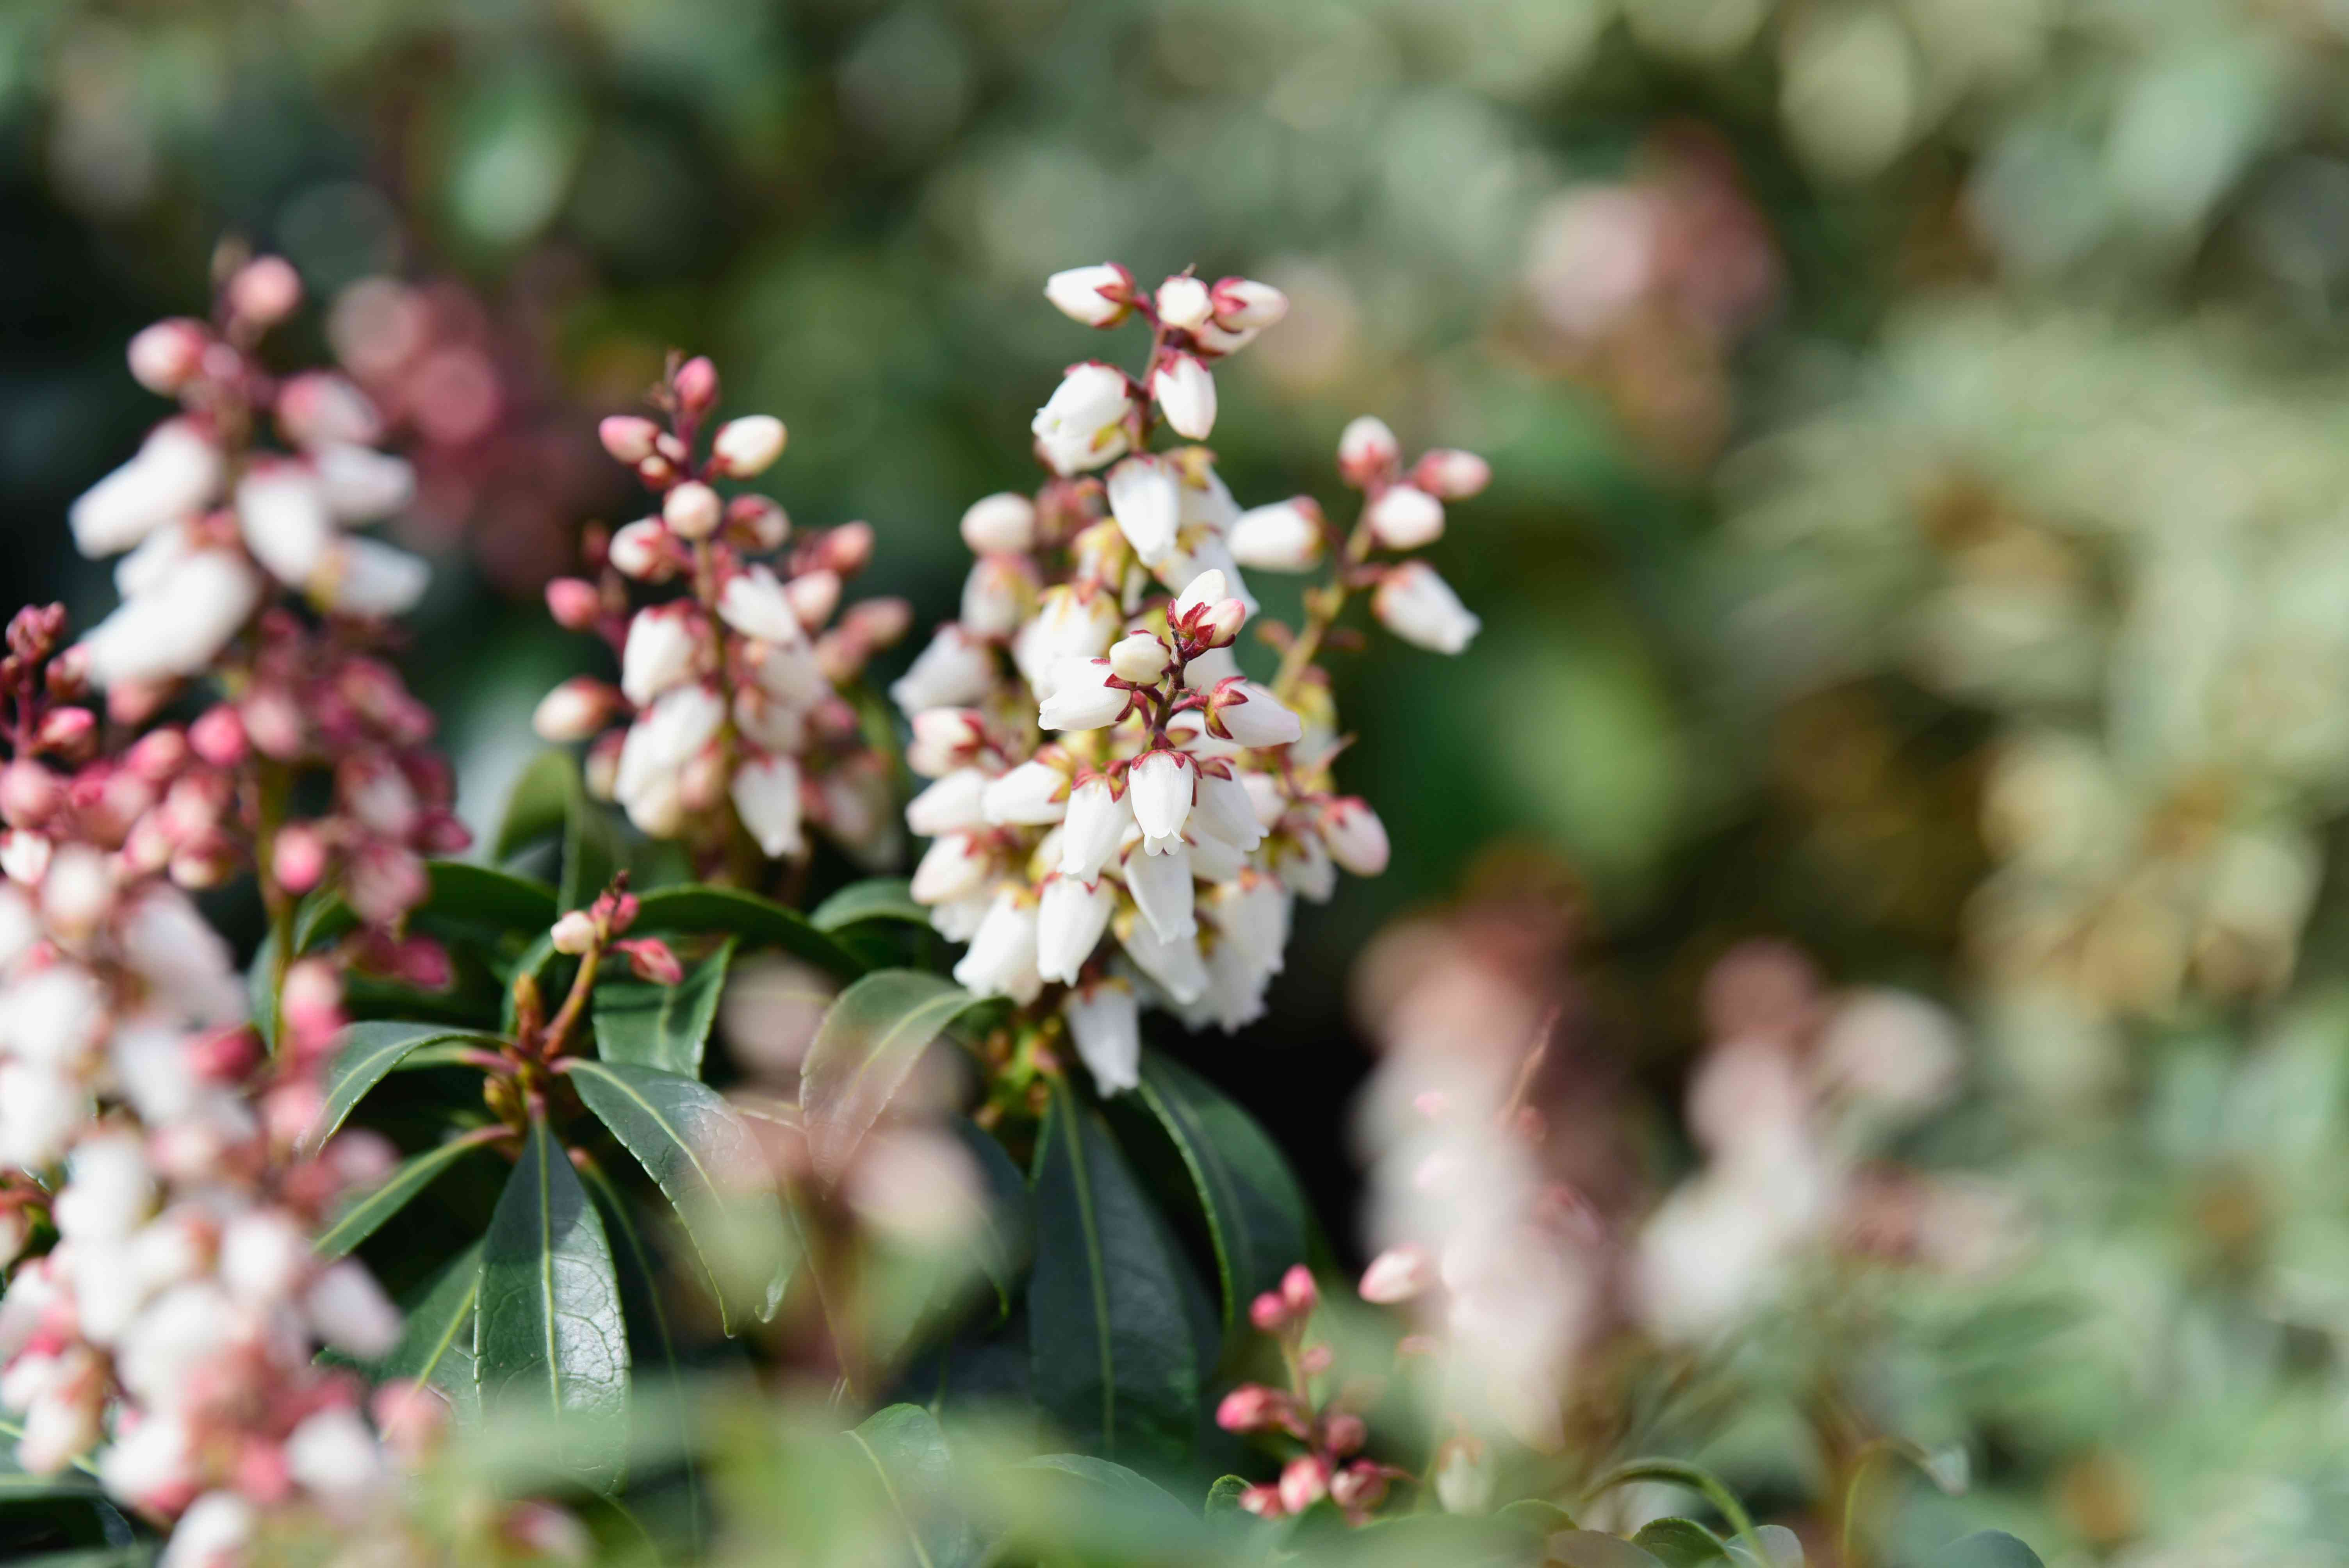 Japanese andromeda plant with white bell-shaped flowers on edge of stems closeup